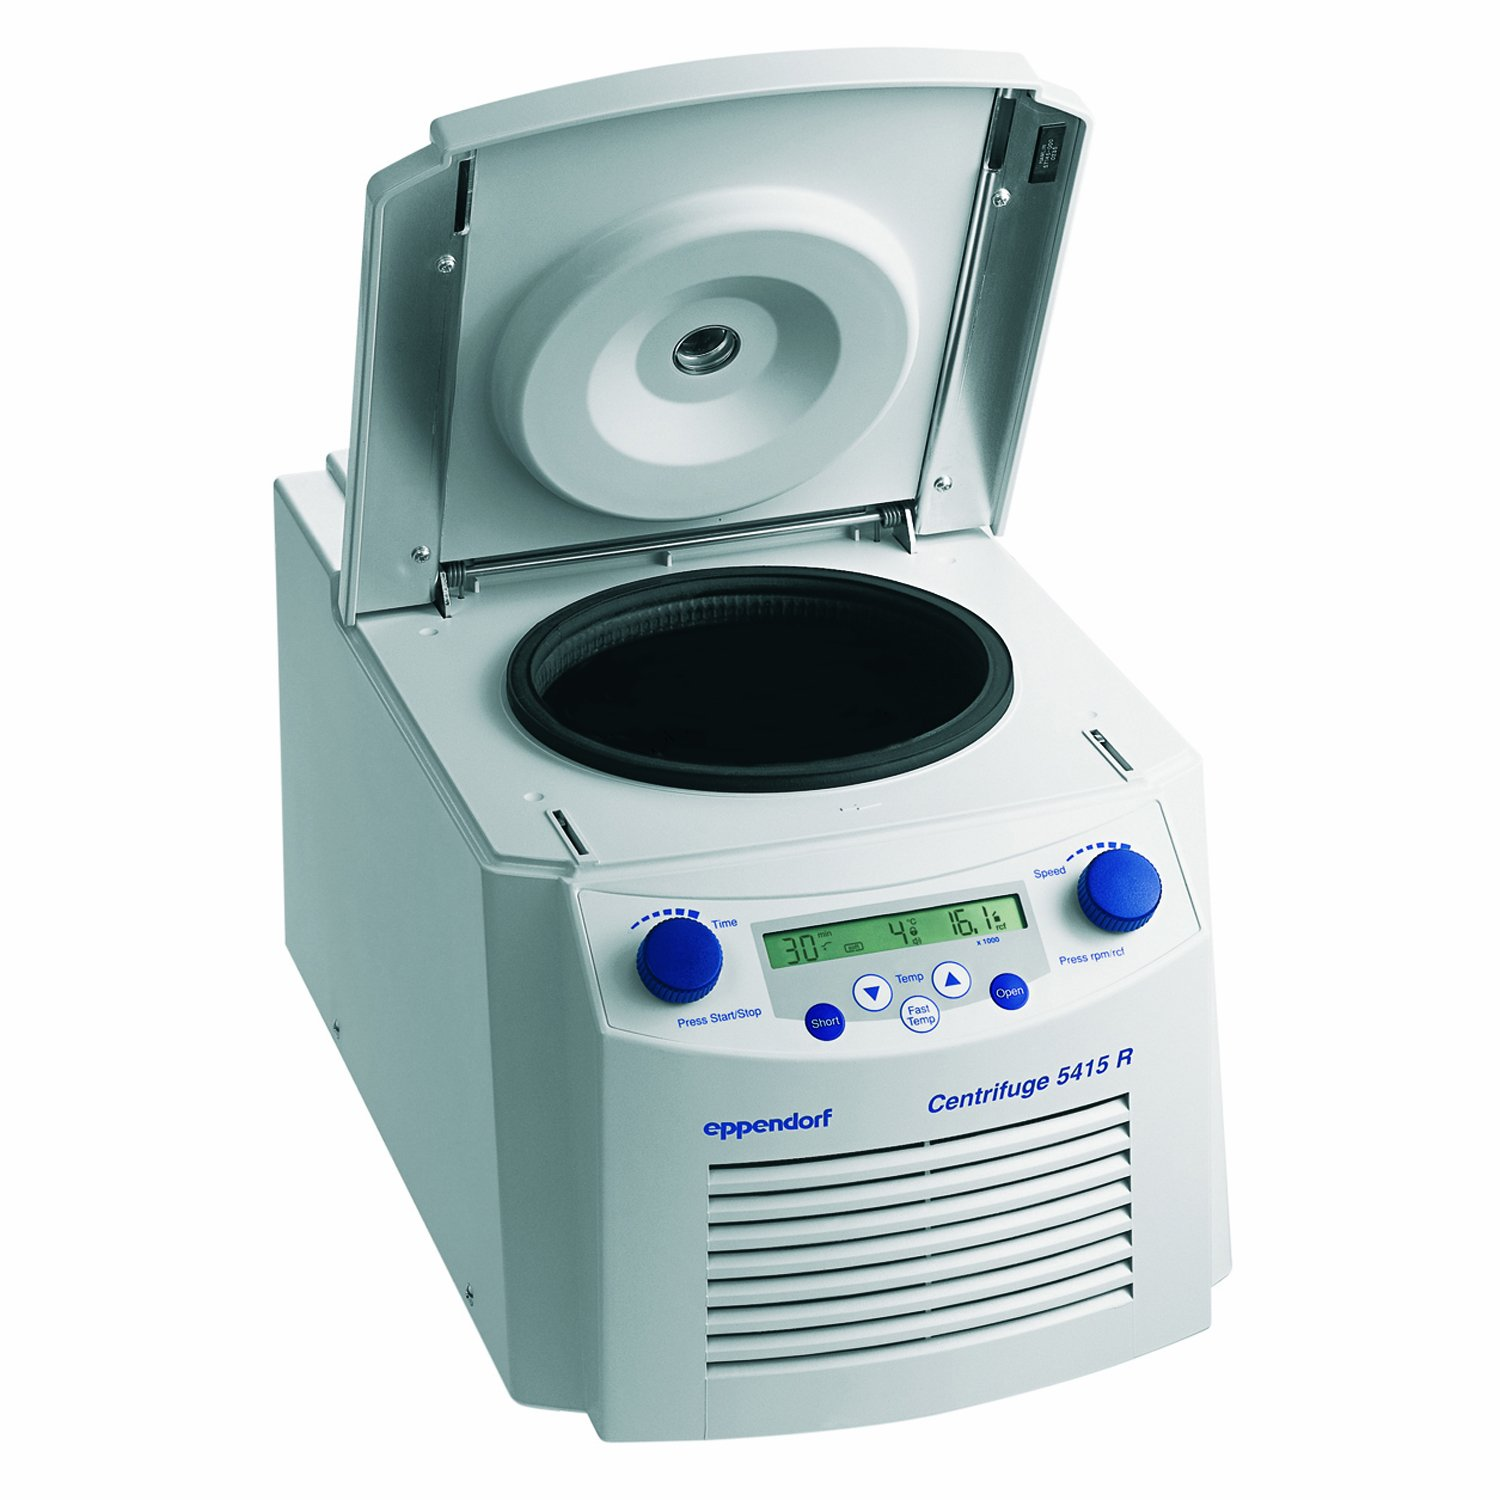 Eppendorf Model 5415 R Variable-Speed Refrigerated Microcentrifuge, 800-13,200rpm Maximum Speed, 120V/60Hz 22621408